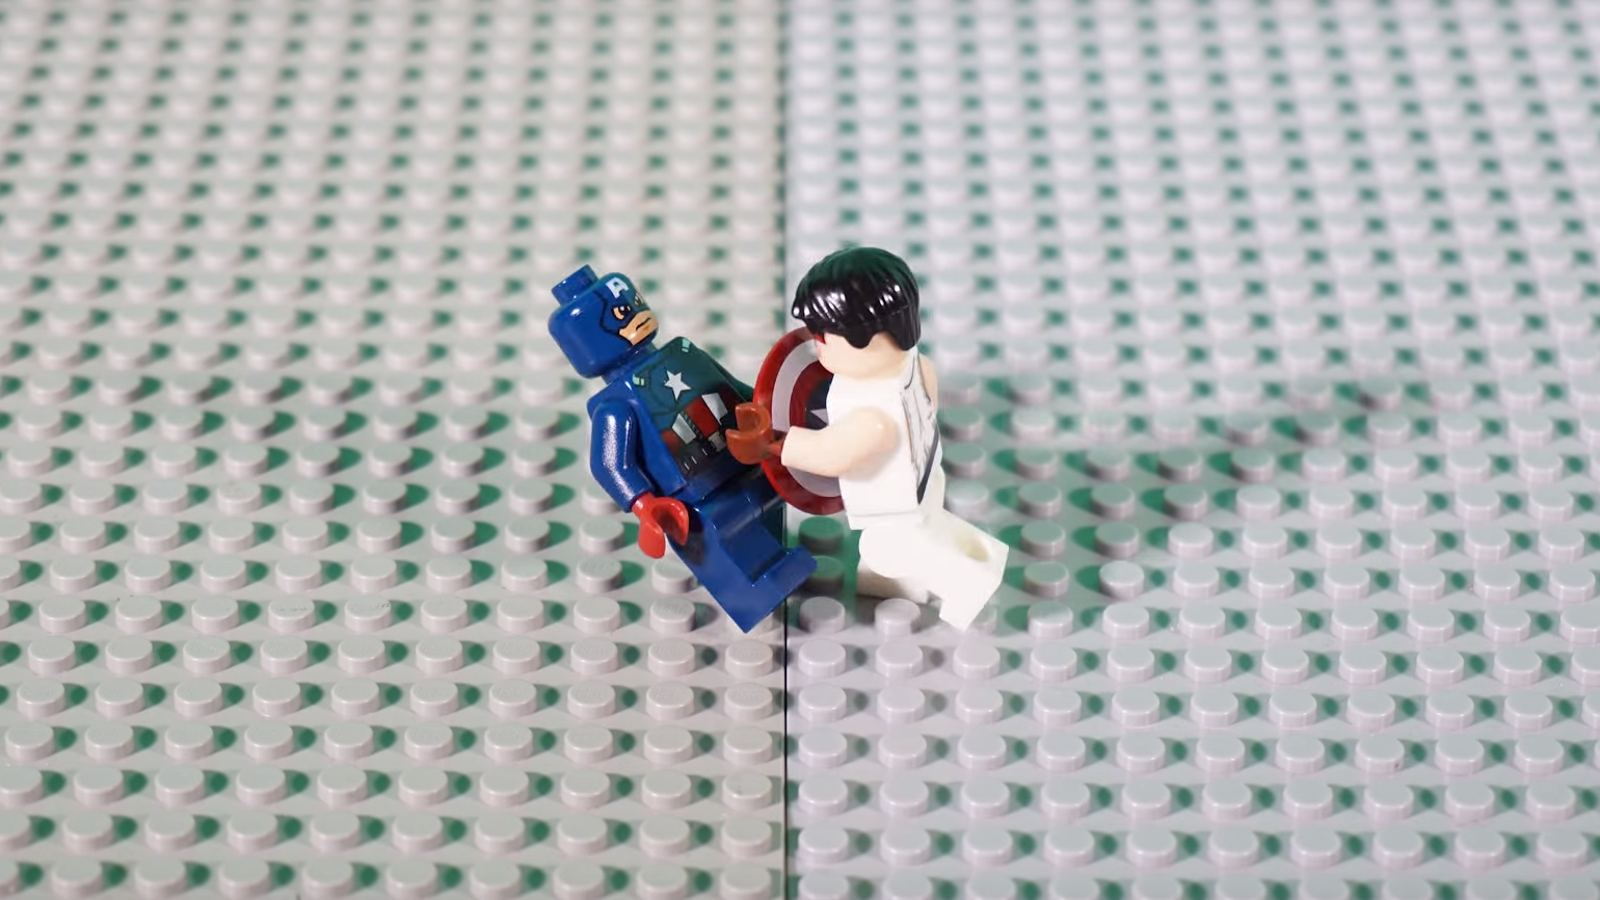 Ryu From Street Fighter Fights Captain America in This Animation, Because It's Cool